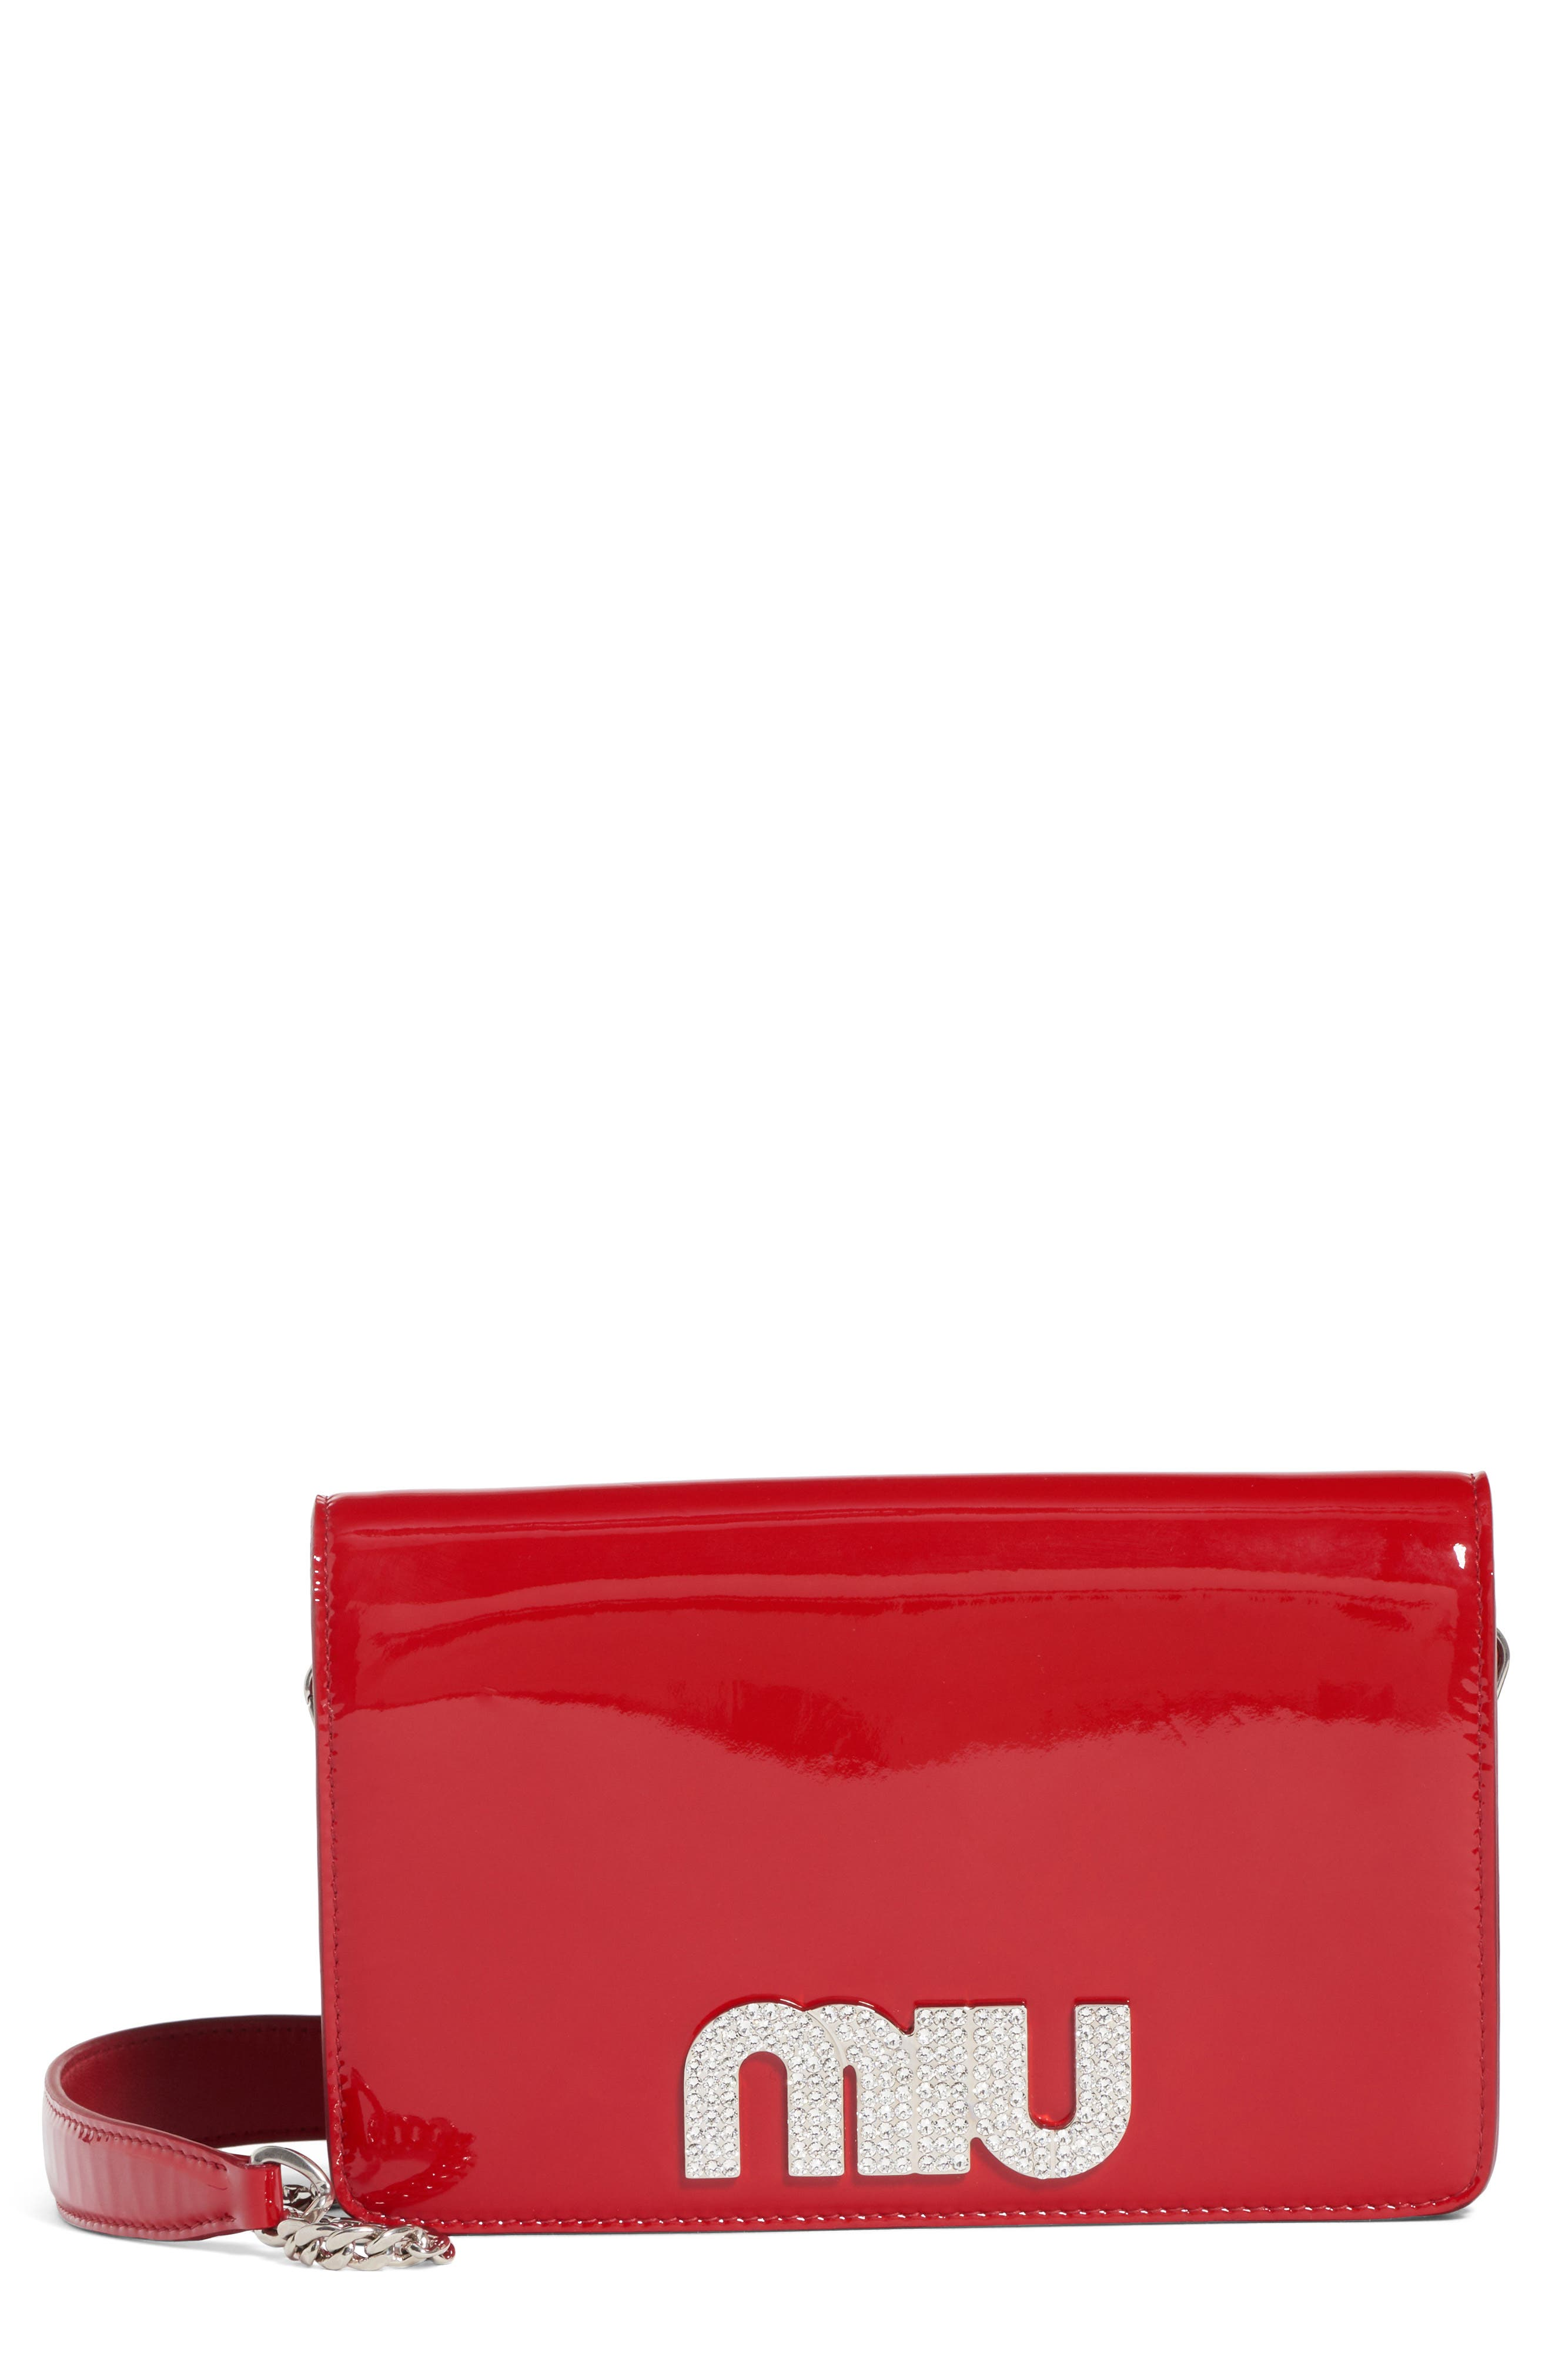 Vernice Crystal Logo Patent Leather Shoulder Bag,                             Main thumbnail 1, color,                             ROSSO